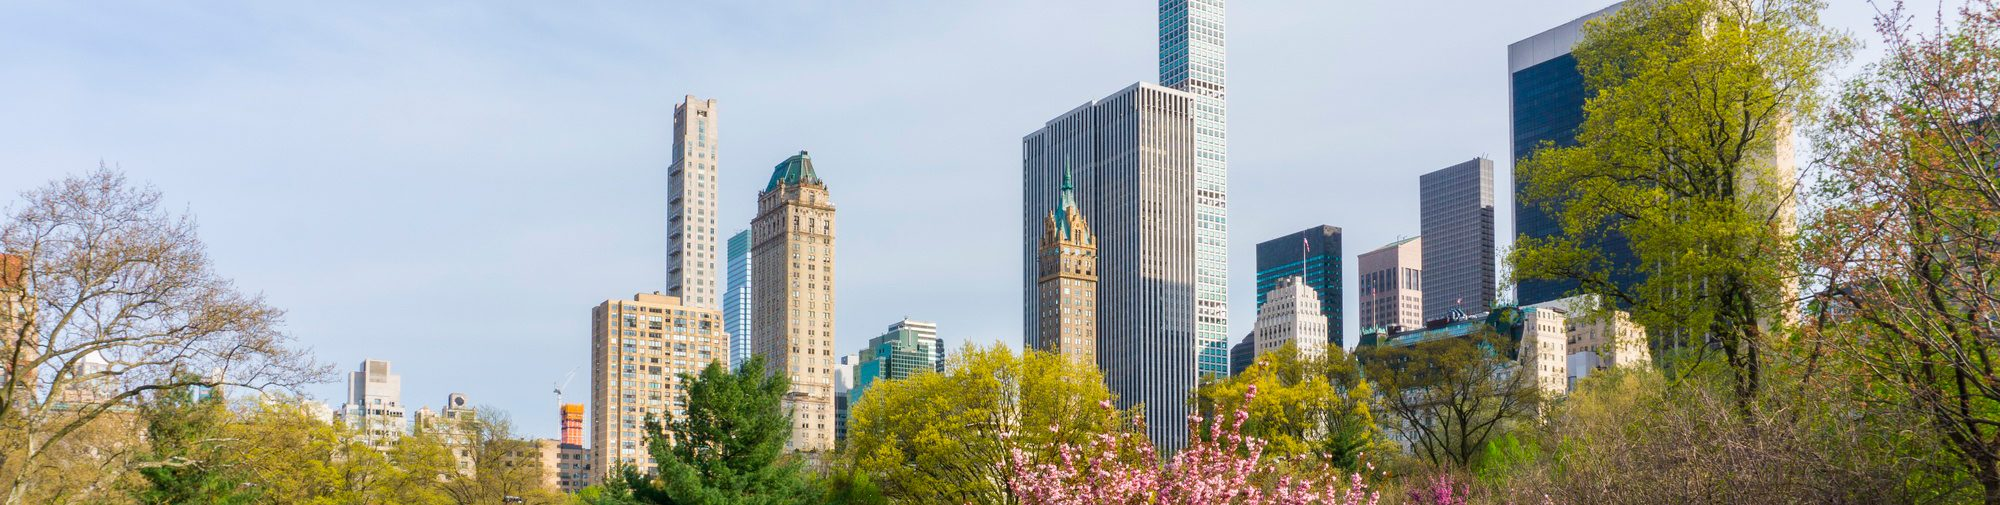 central-park-nyc-sml2